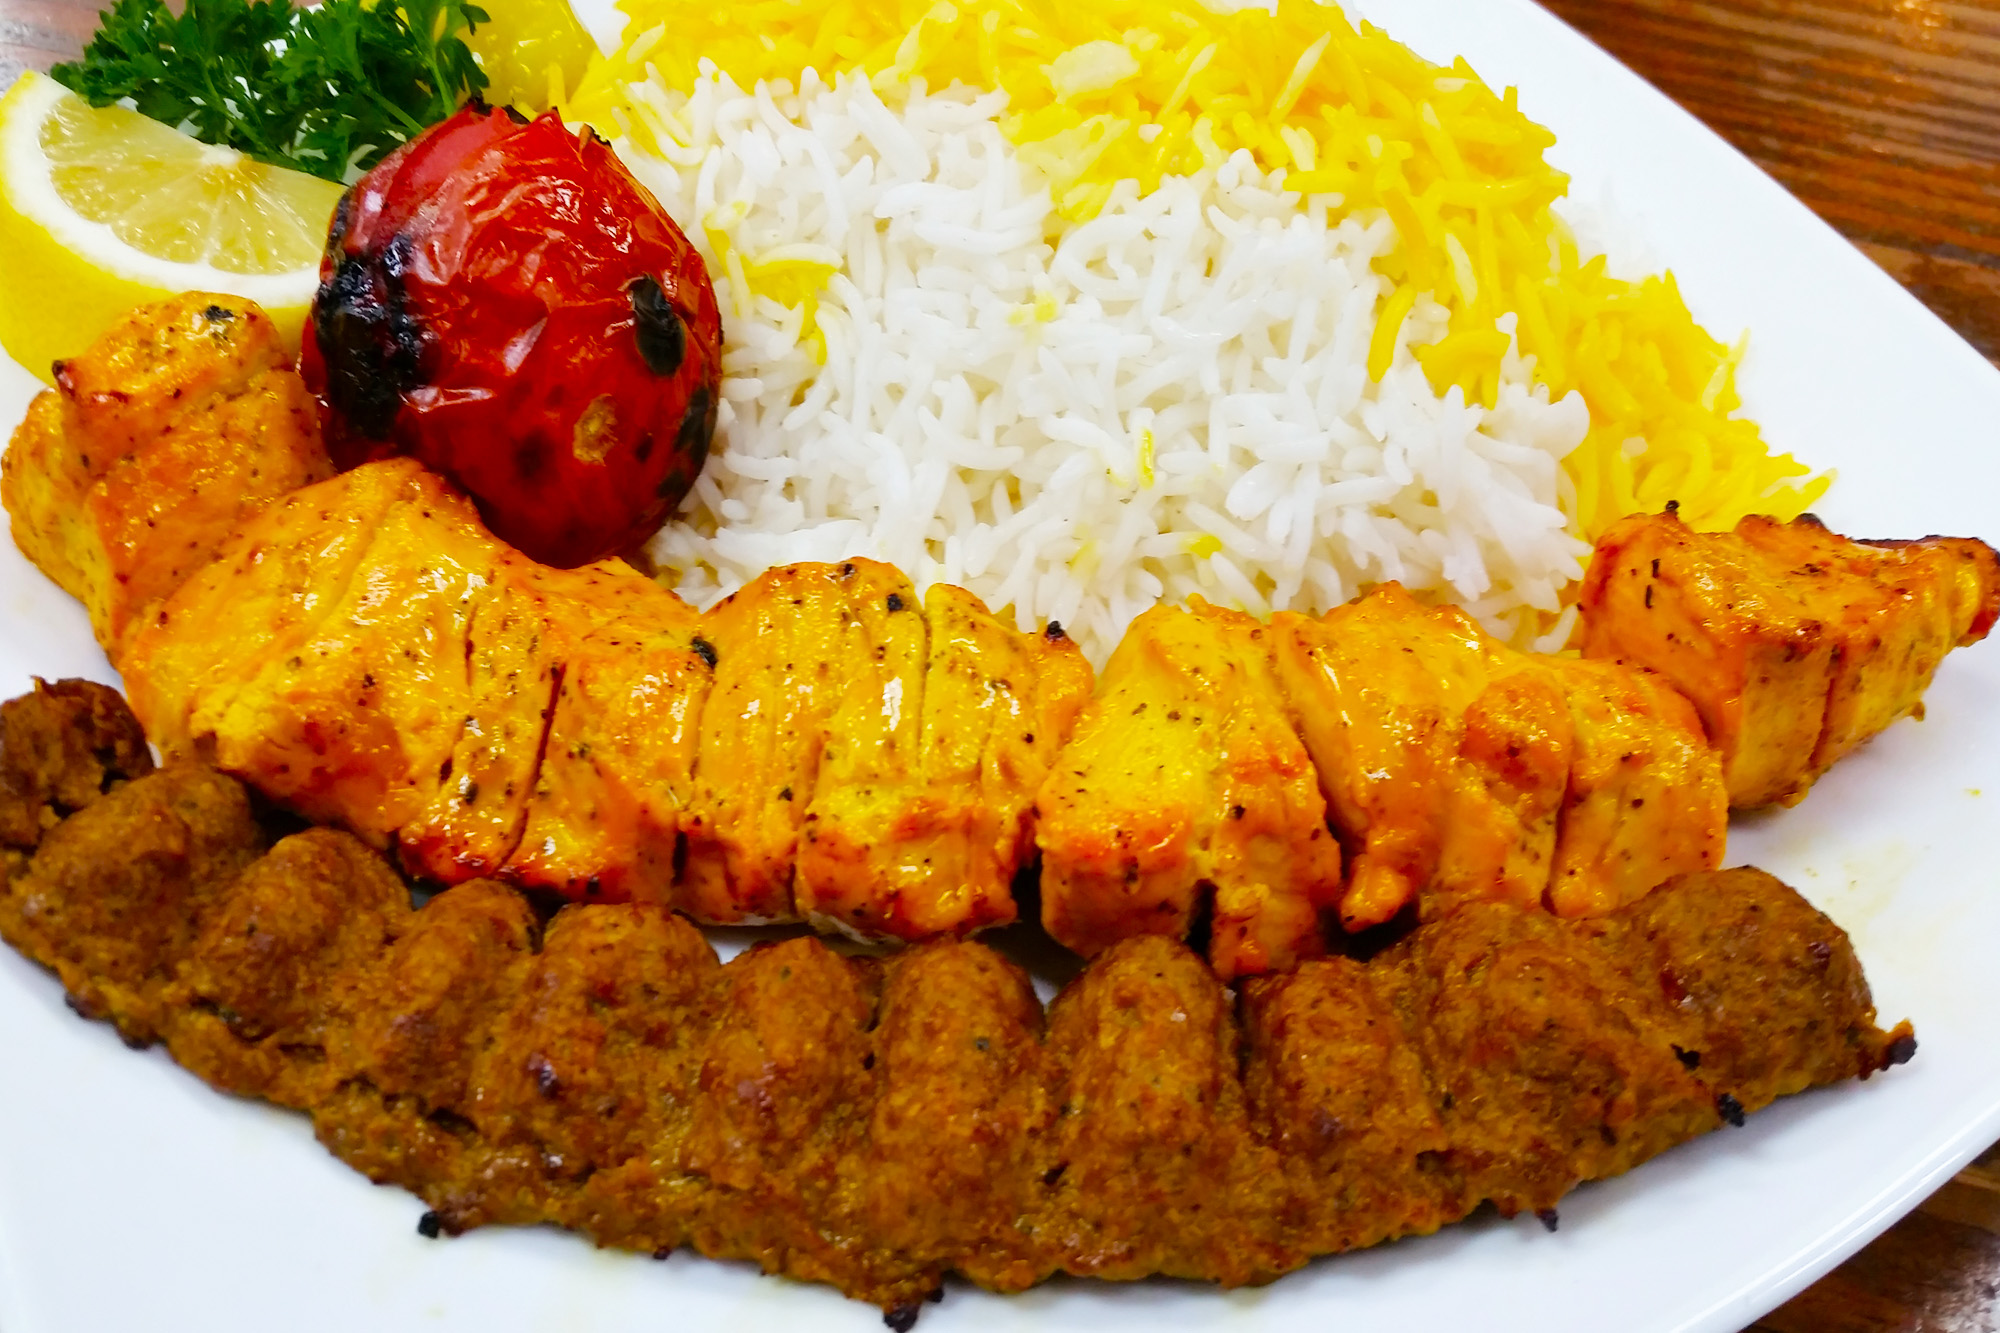 Vaziri Kebab = One skewer of chicken and one skewer of ground beef served with basmati rice and grilled tomatoes at Sahel Persian Restaurant